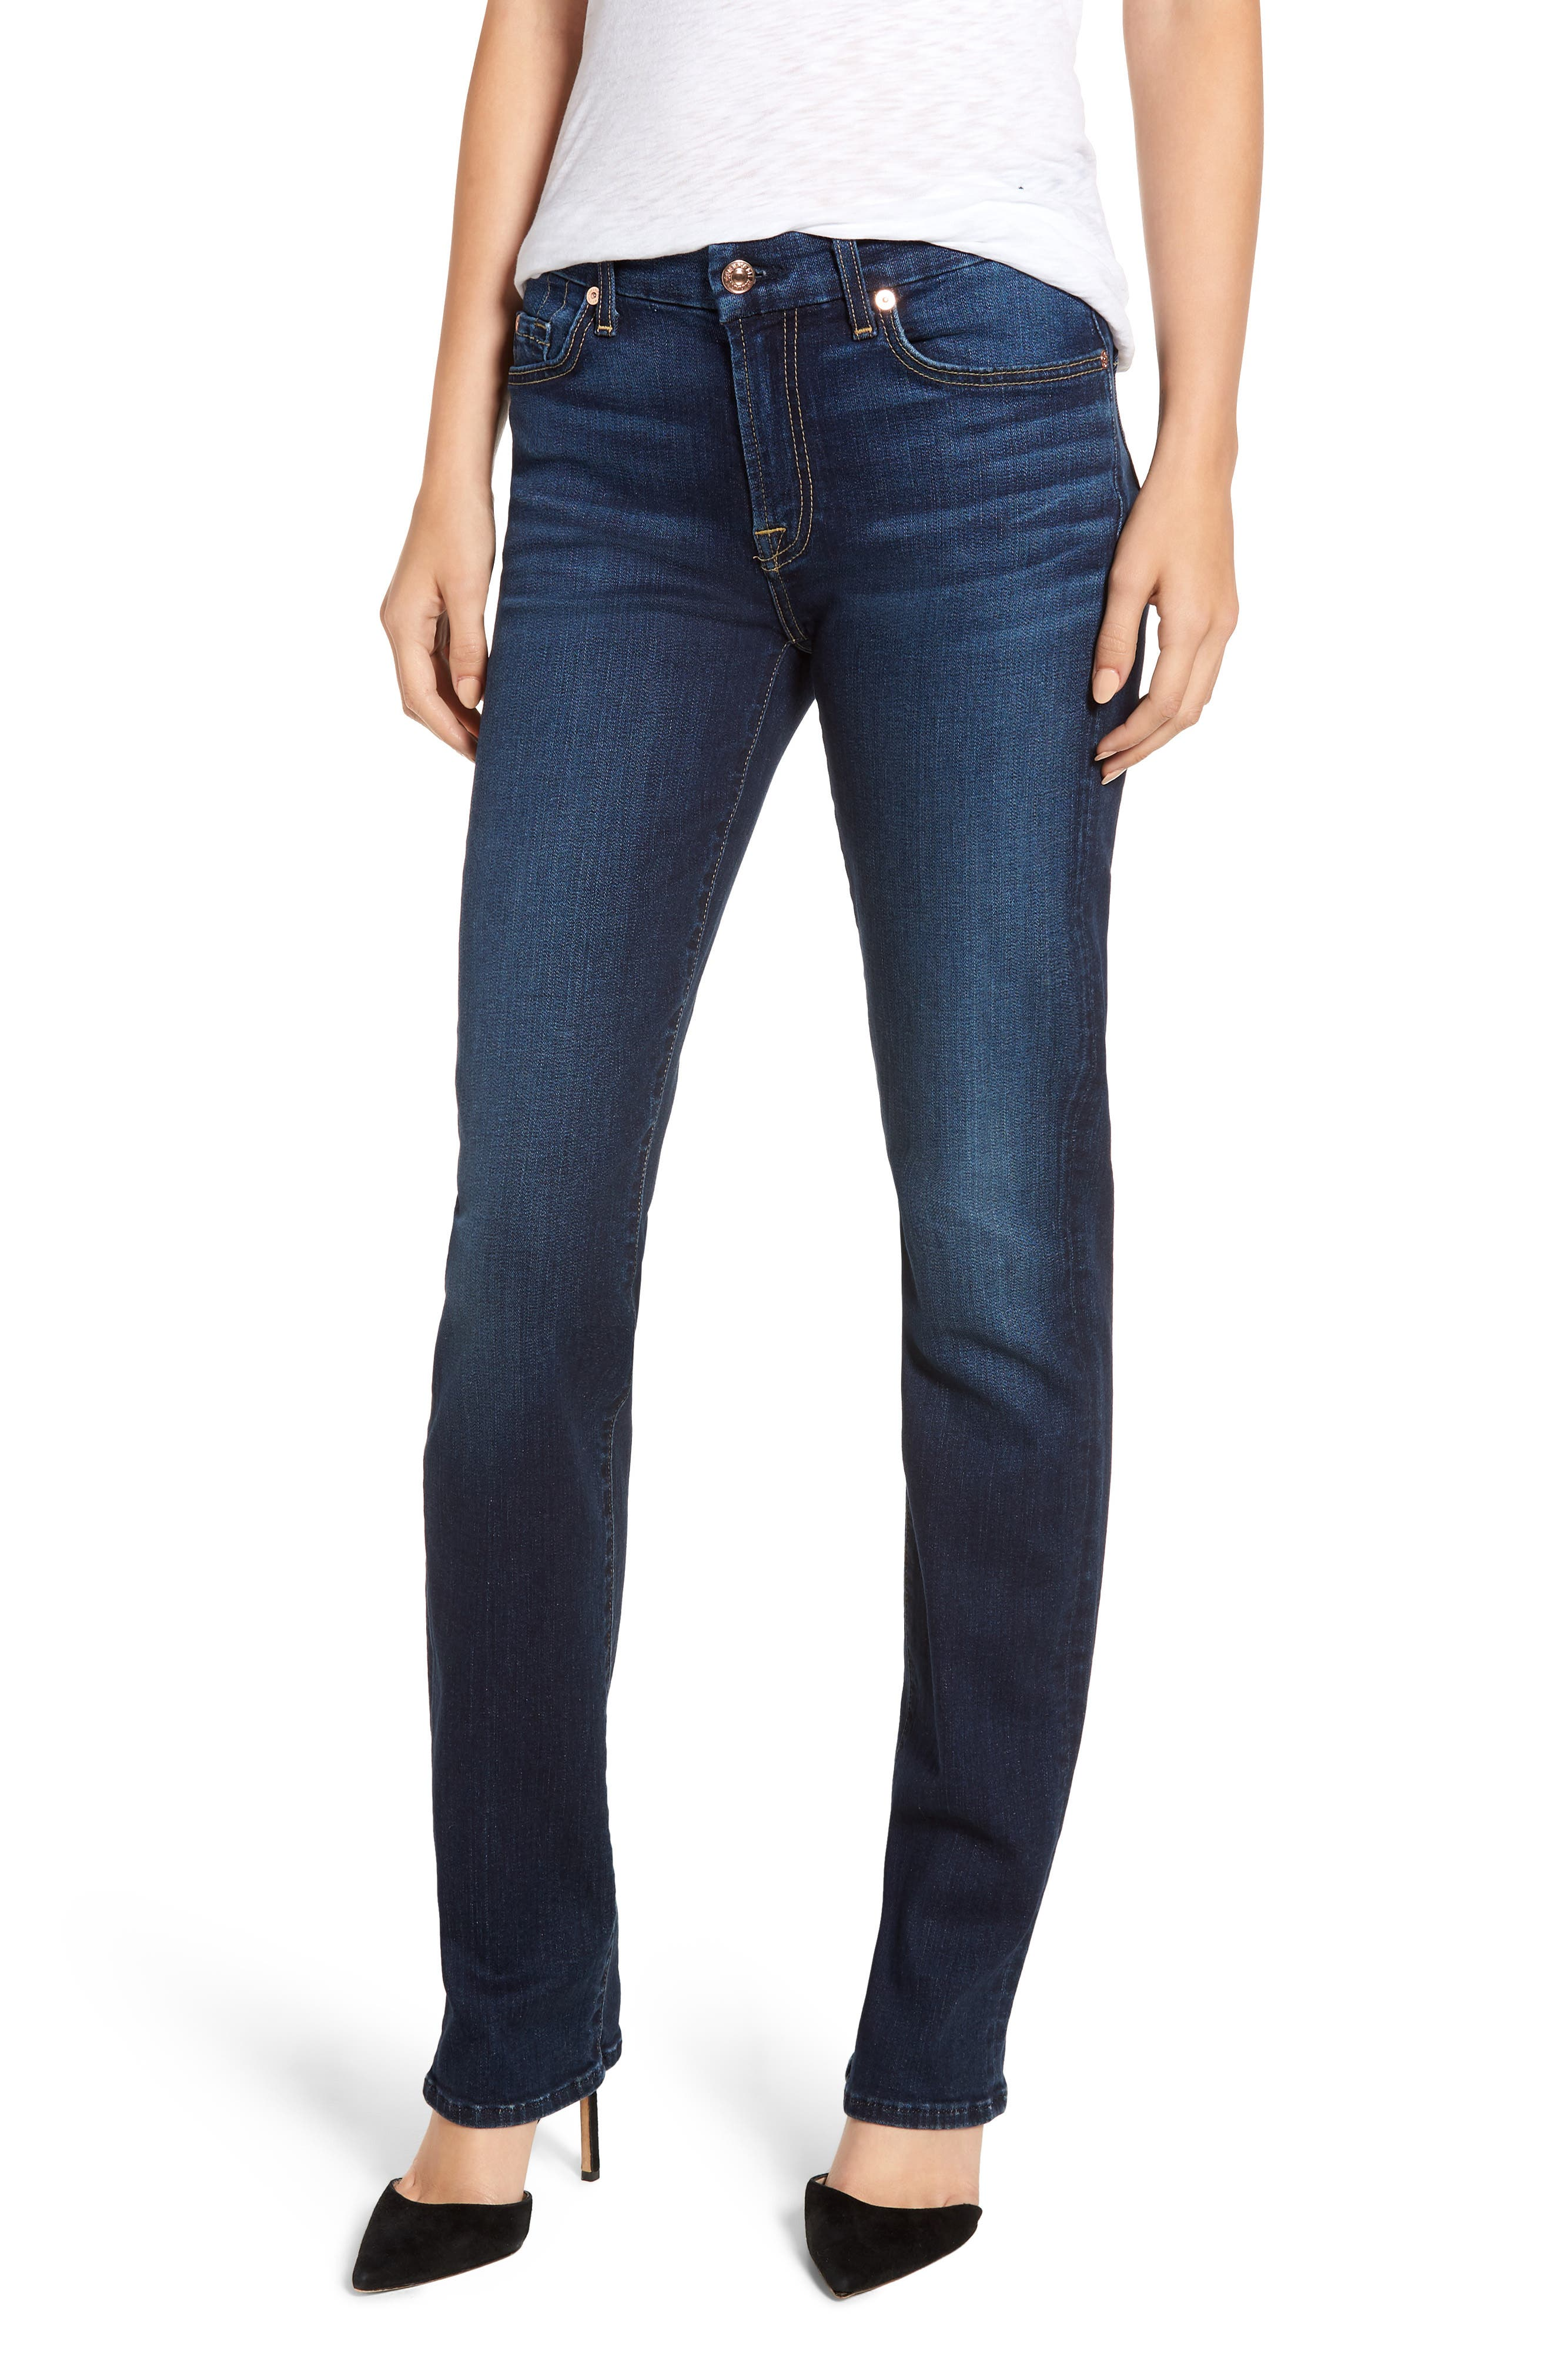 7 FOR ALL MANKIND<SUP>®</SUP>, b(air) Kimmie Straight Leg Jeans, Main thumbnail 1, color, AUTHENTIC FATE